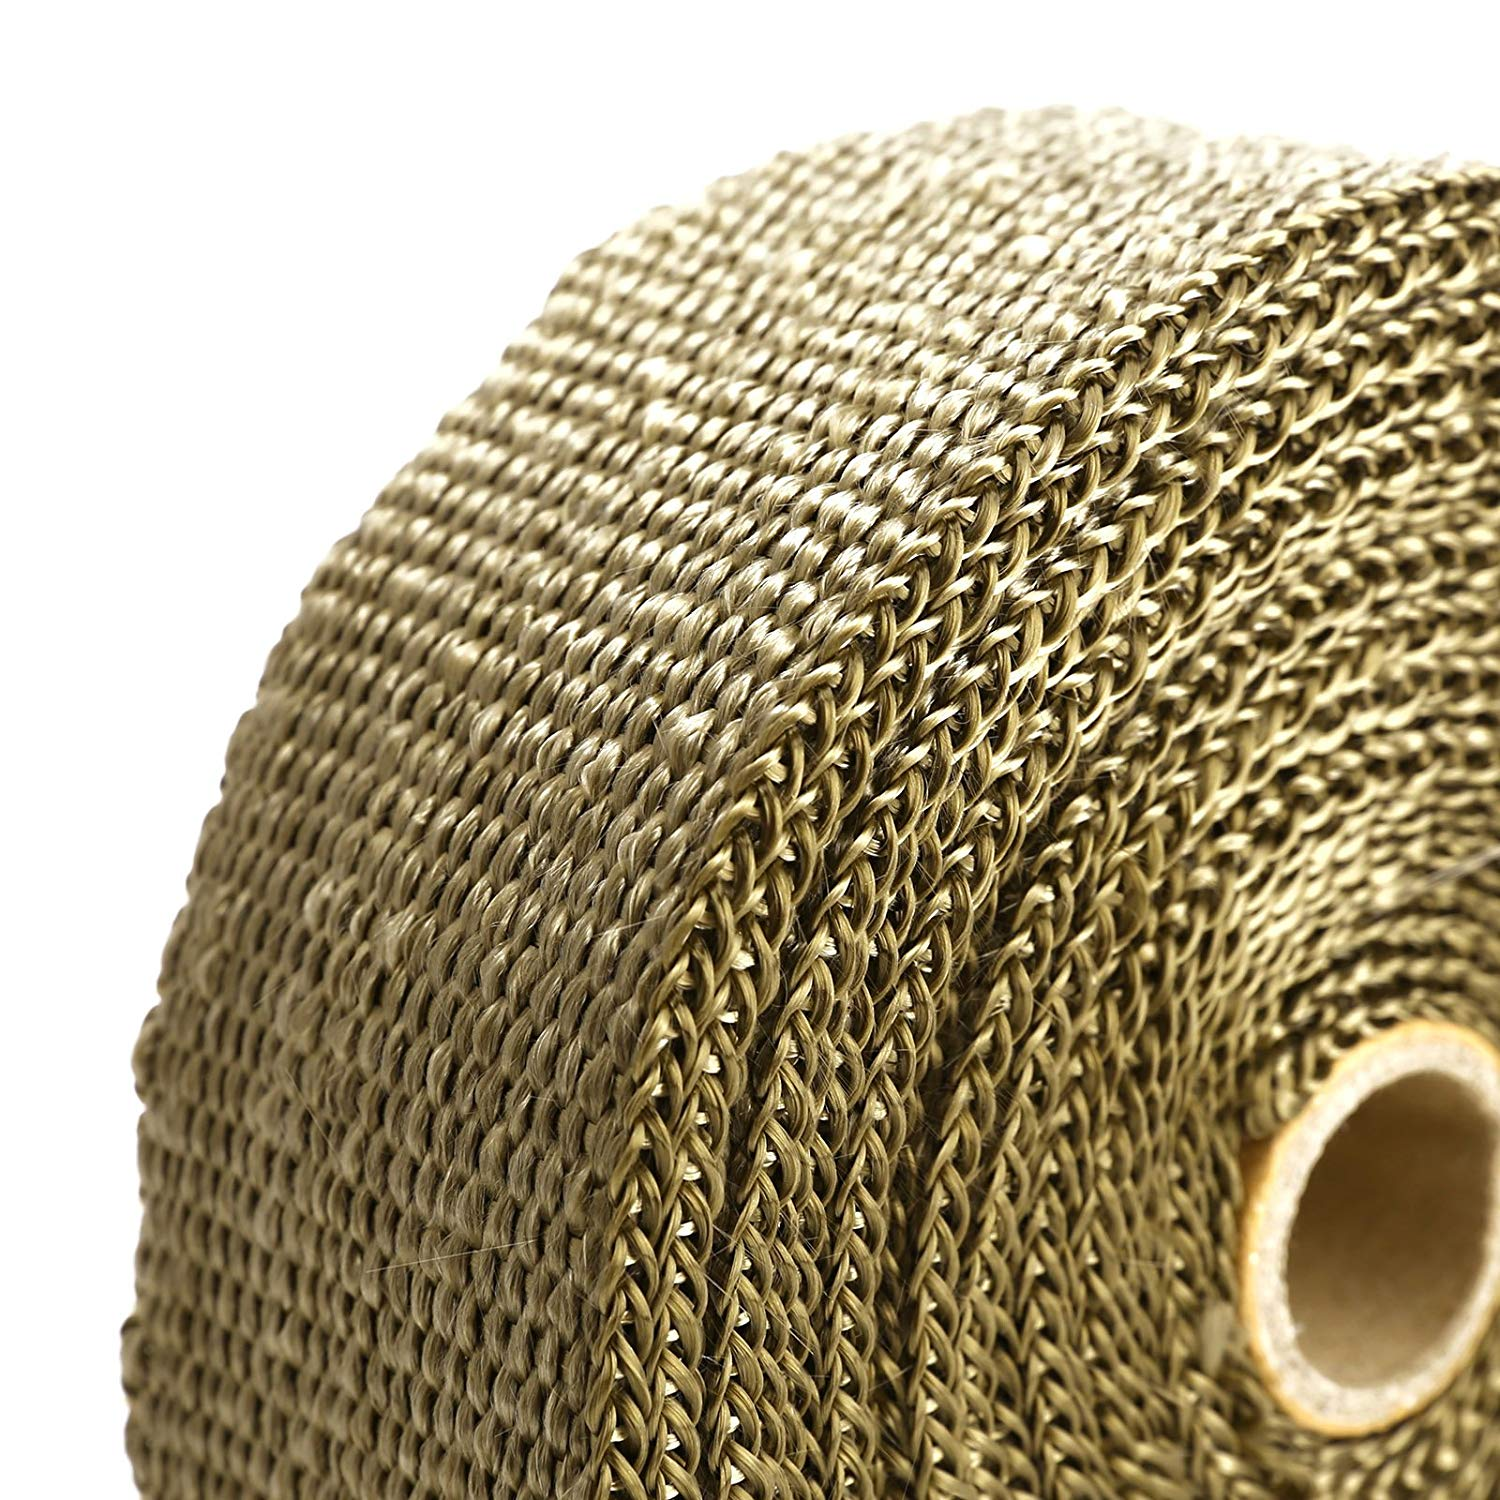 Hot Retail price 10m x 5cm x1.5mm Exhaust Tube Thermal Insulation Collector Tape Motorcycle Auto Fiber Turbo High Heat Wrap TapeHot Retail price 10m x 5cm x1.5mm Exhaust Tube Thermal Insulation Collector Tape Motorcycle Auto Fiber Turbo High Heat Wrap Tape